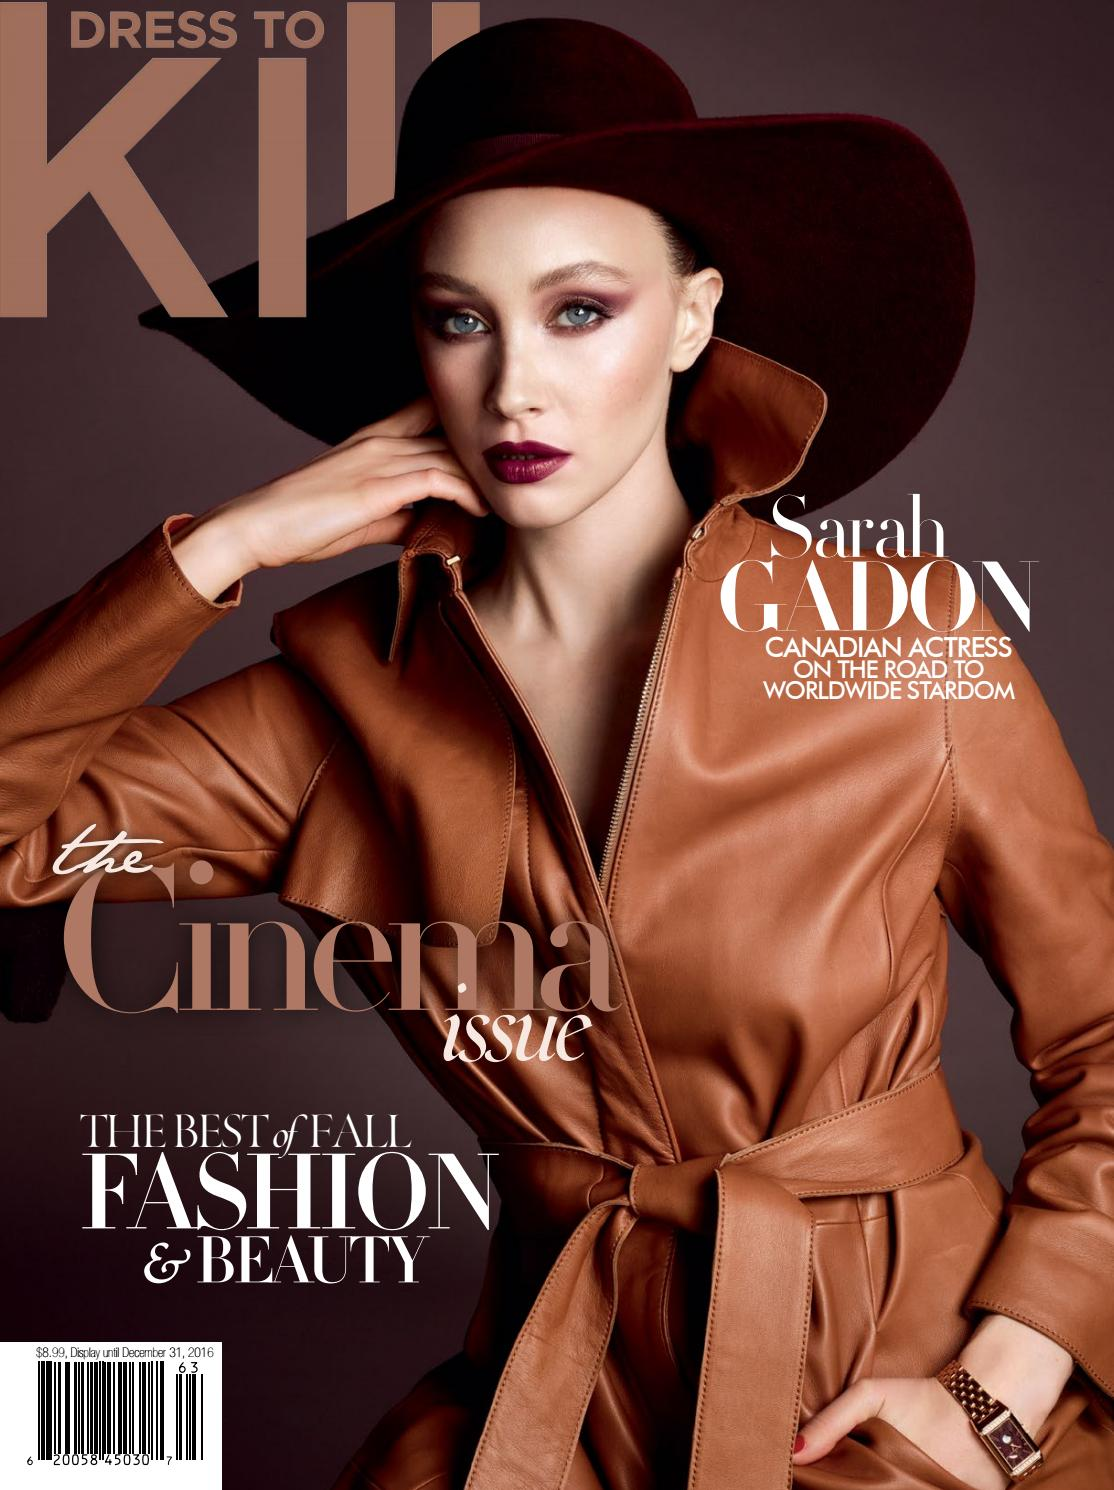 13a79c7ca9 Dress to kill fall 2016 Sarah Gadon by Dress to Kill Magazine - issuu